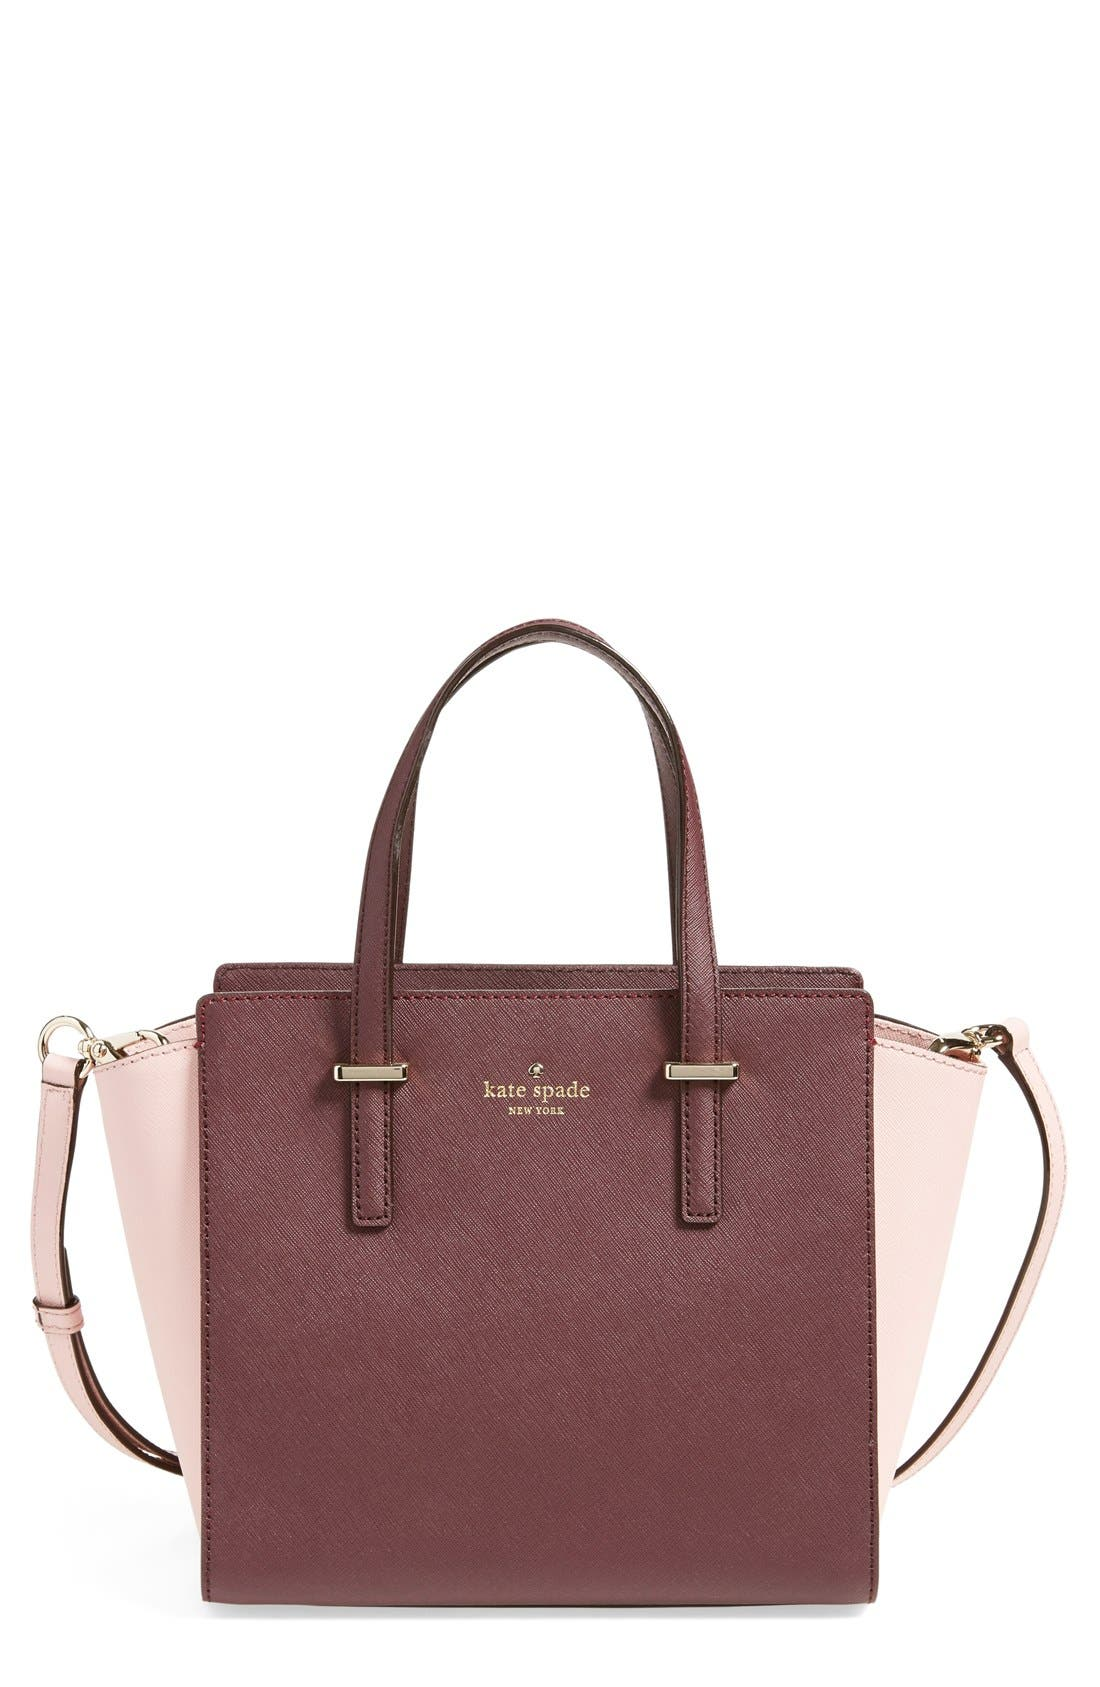 Alternate Image 1 Selected - kate spade new york 'cedar street - small hayden' leather satchel